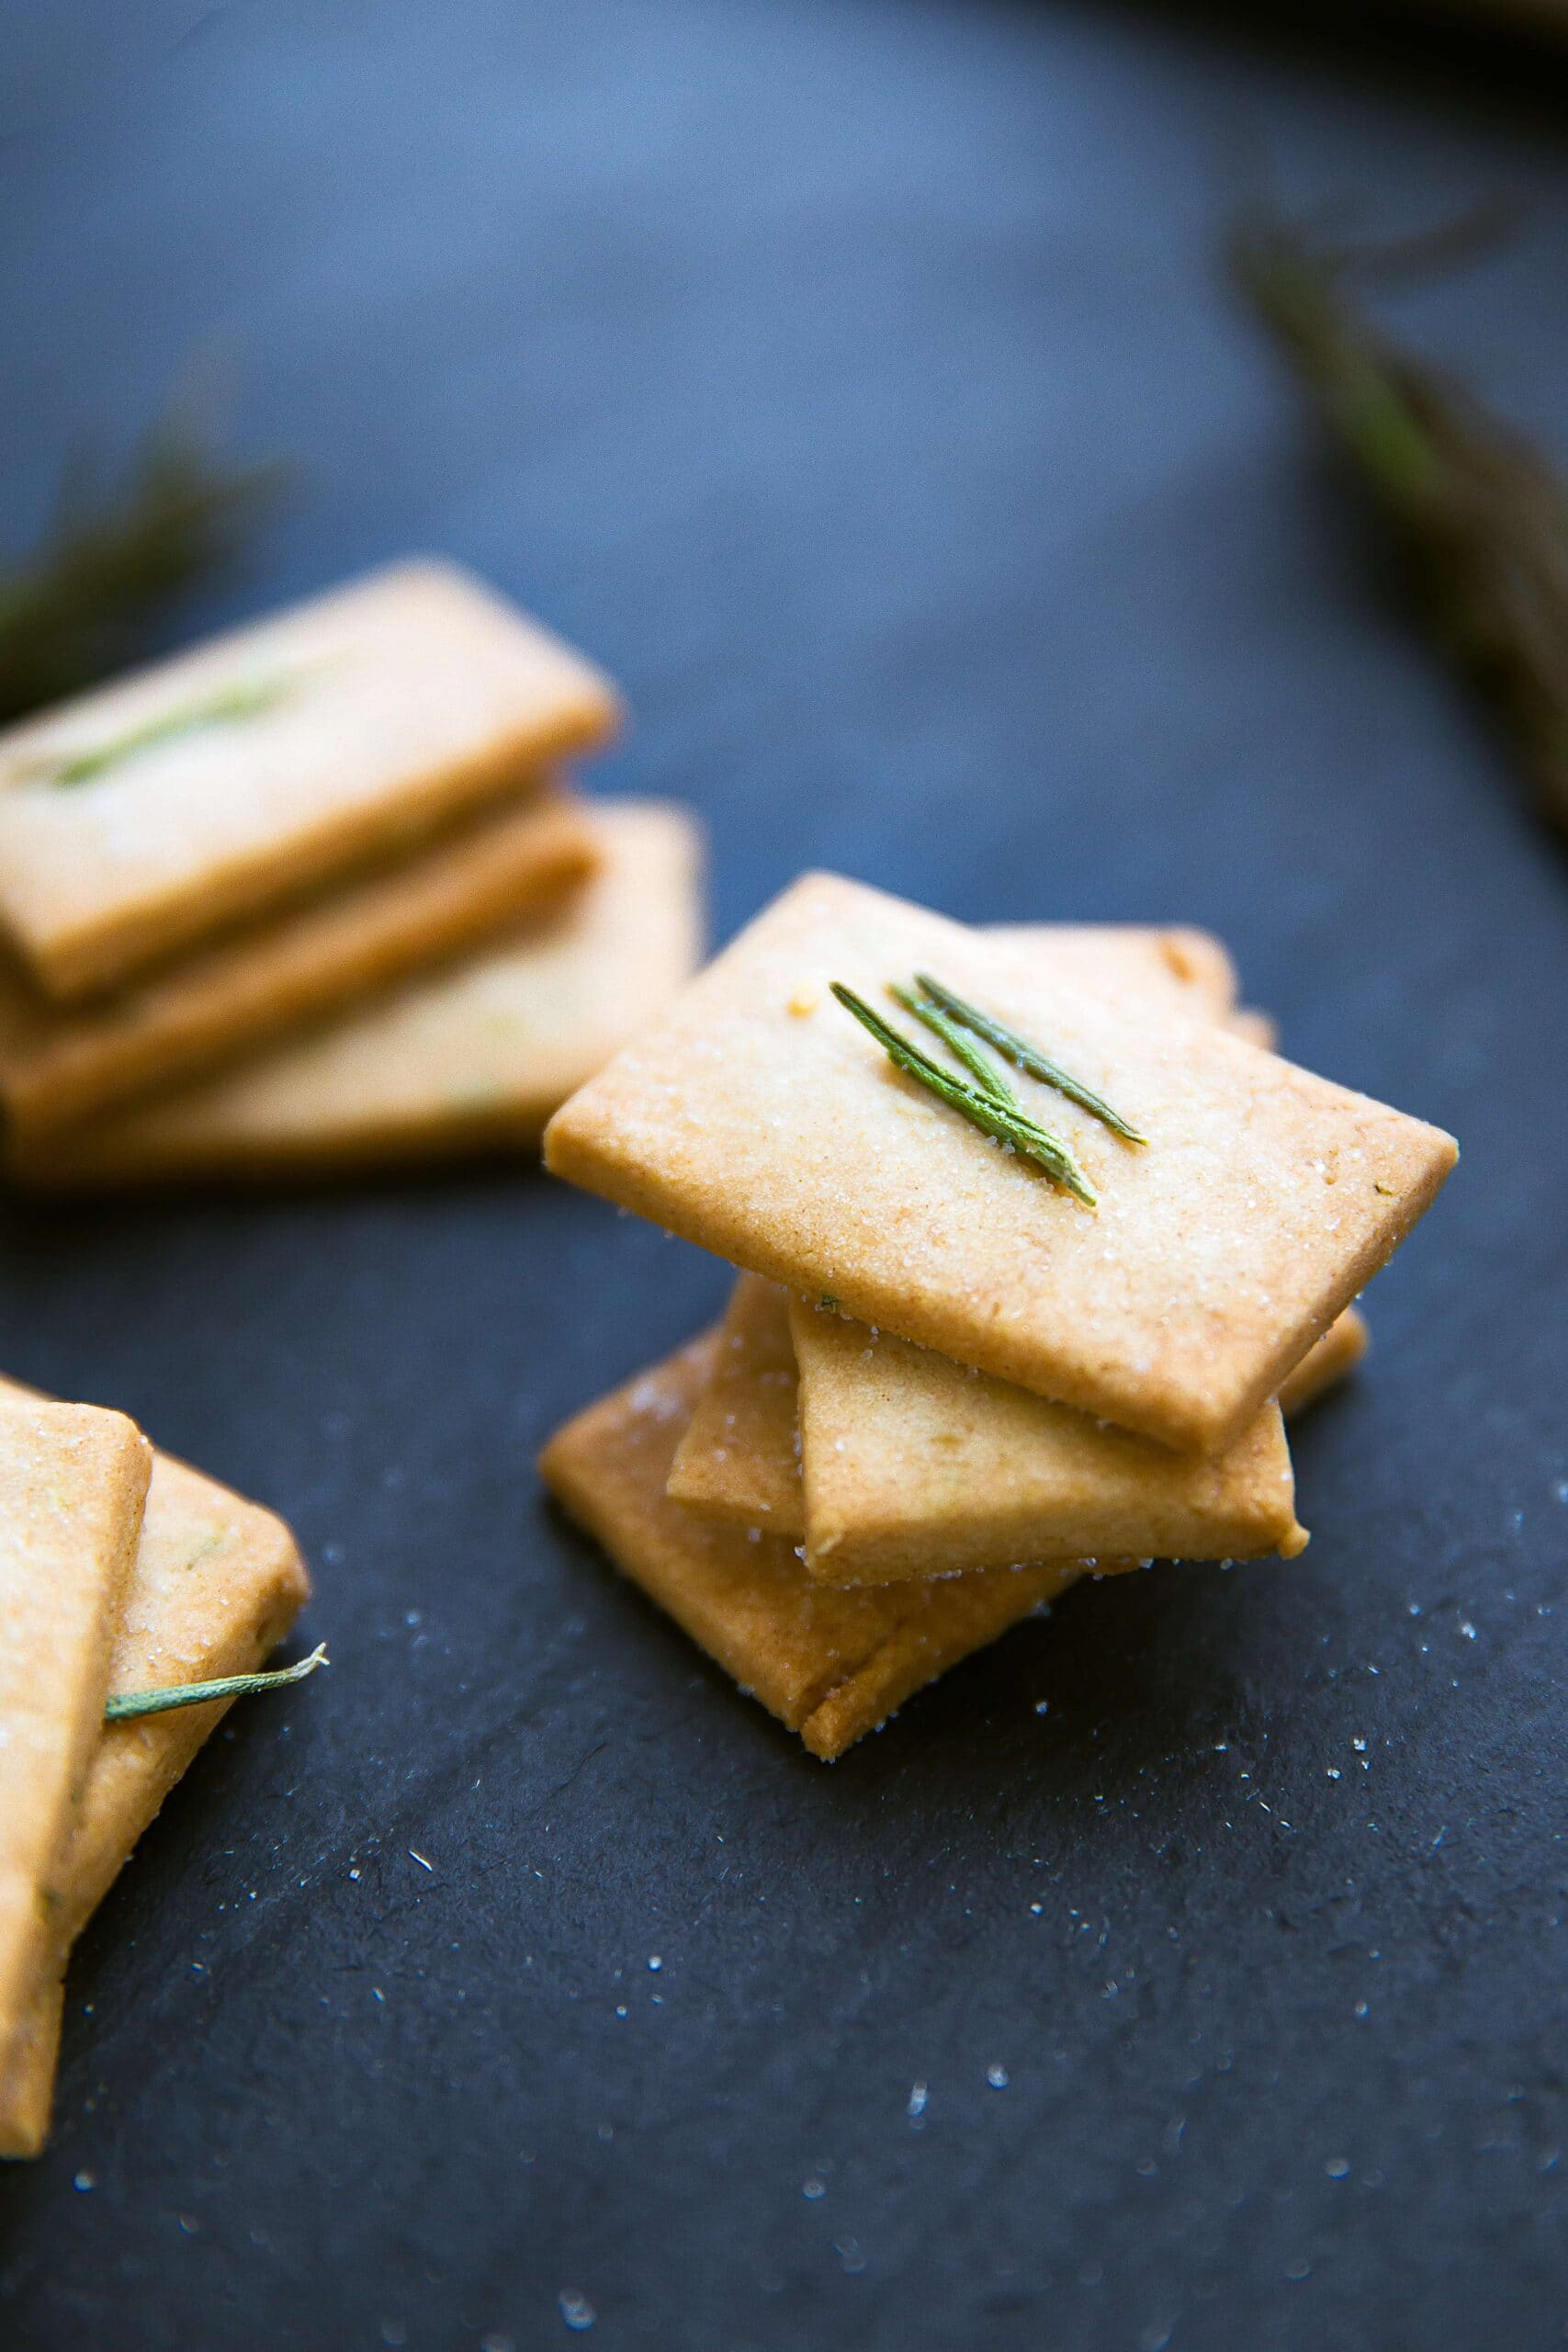 Rosemary-infused Shortbread Crackers with a touch of sweetness and a ton of flavor | Broma Bakery